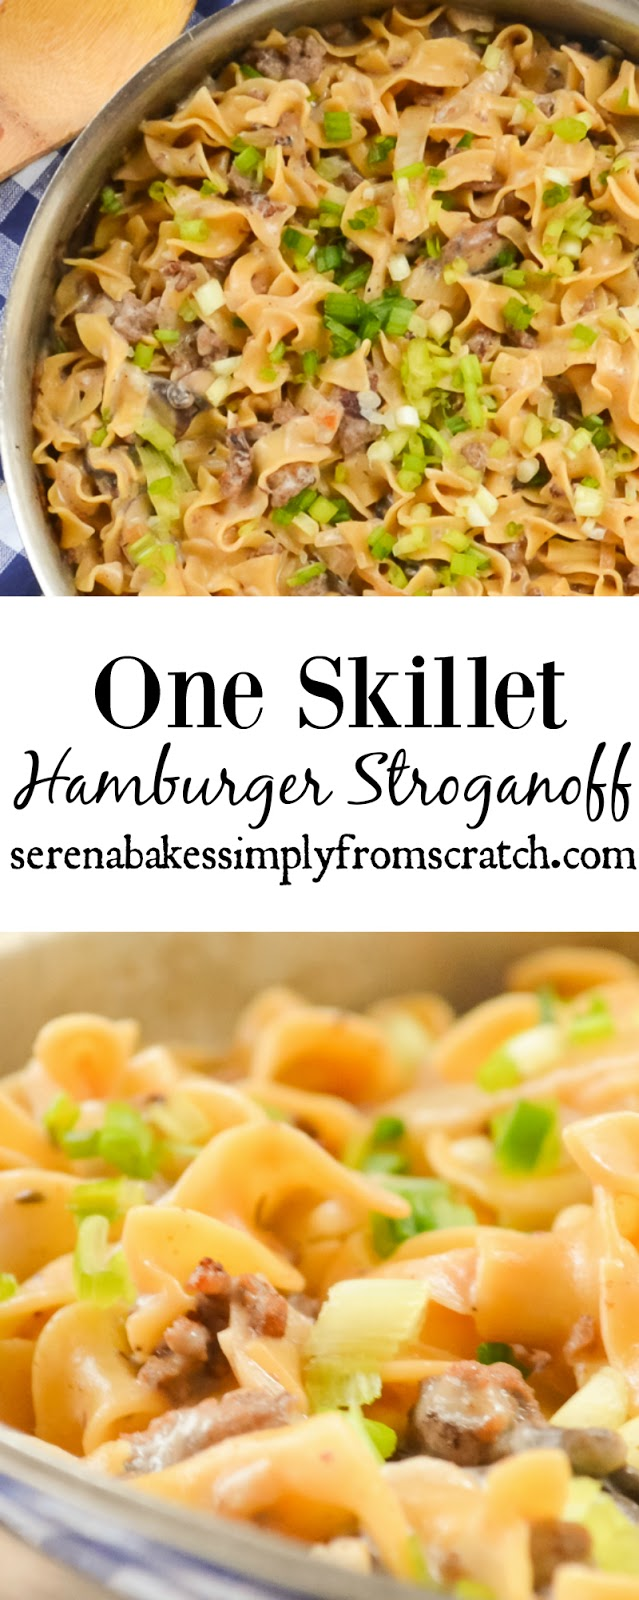 One Skillet Hamburger Beef Stroganoff from scratch! So easy to make and a family favorite! serenabakessimplyfromscratch.com